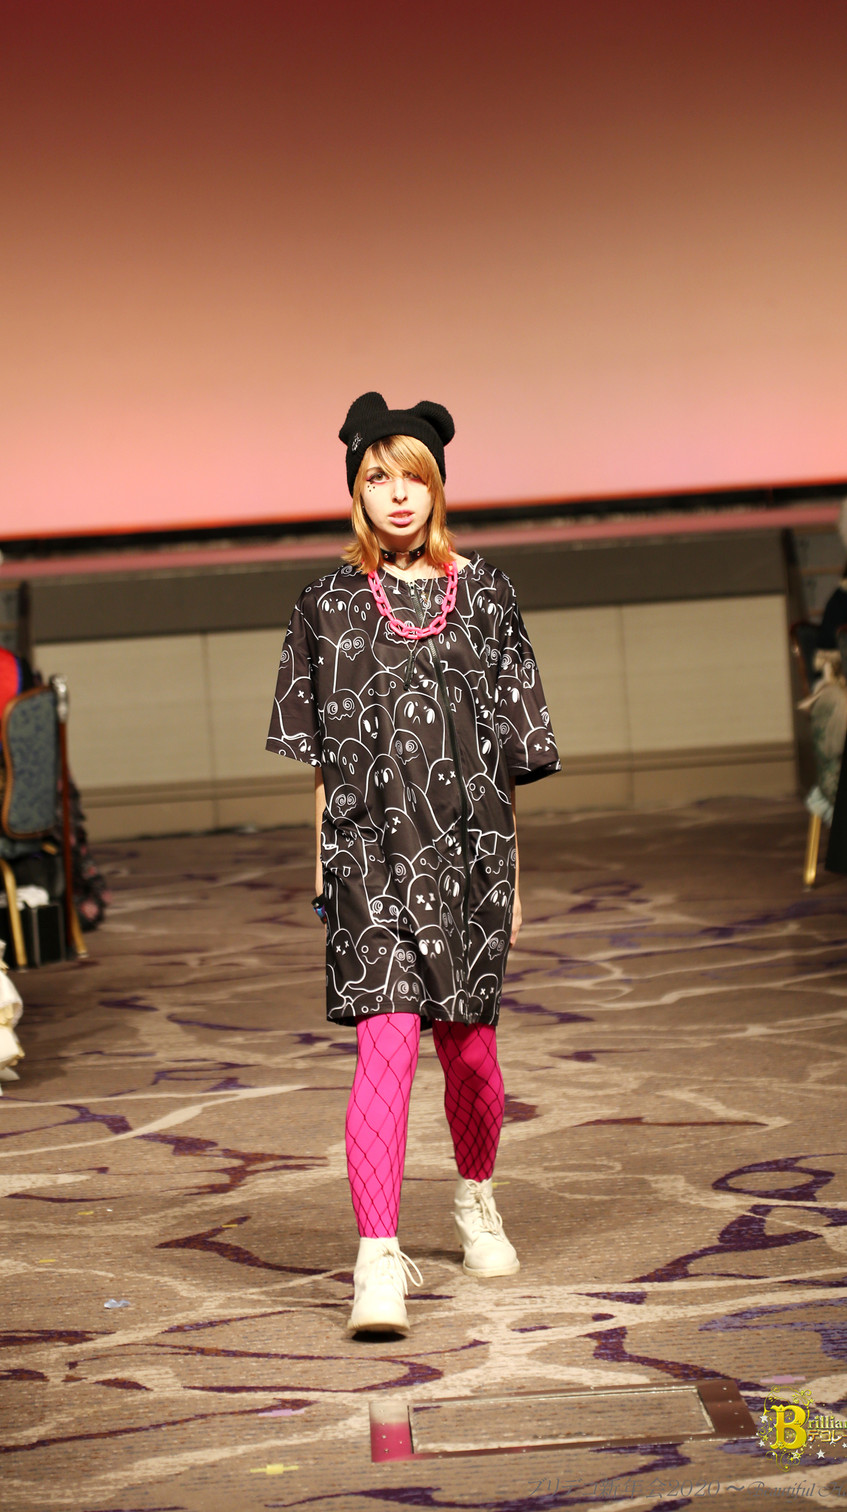 GHOST GiRL GOODS at ブリデコ 2020 BruiDeco World Lolita Collection Fashion Show in Japan